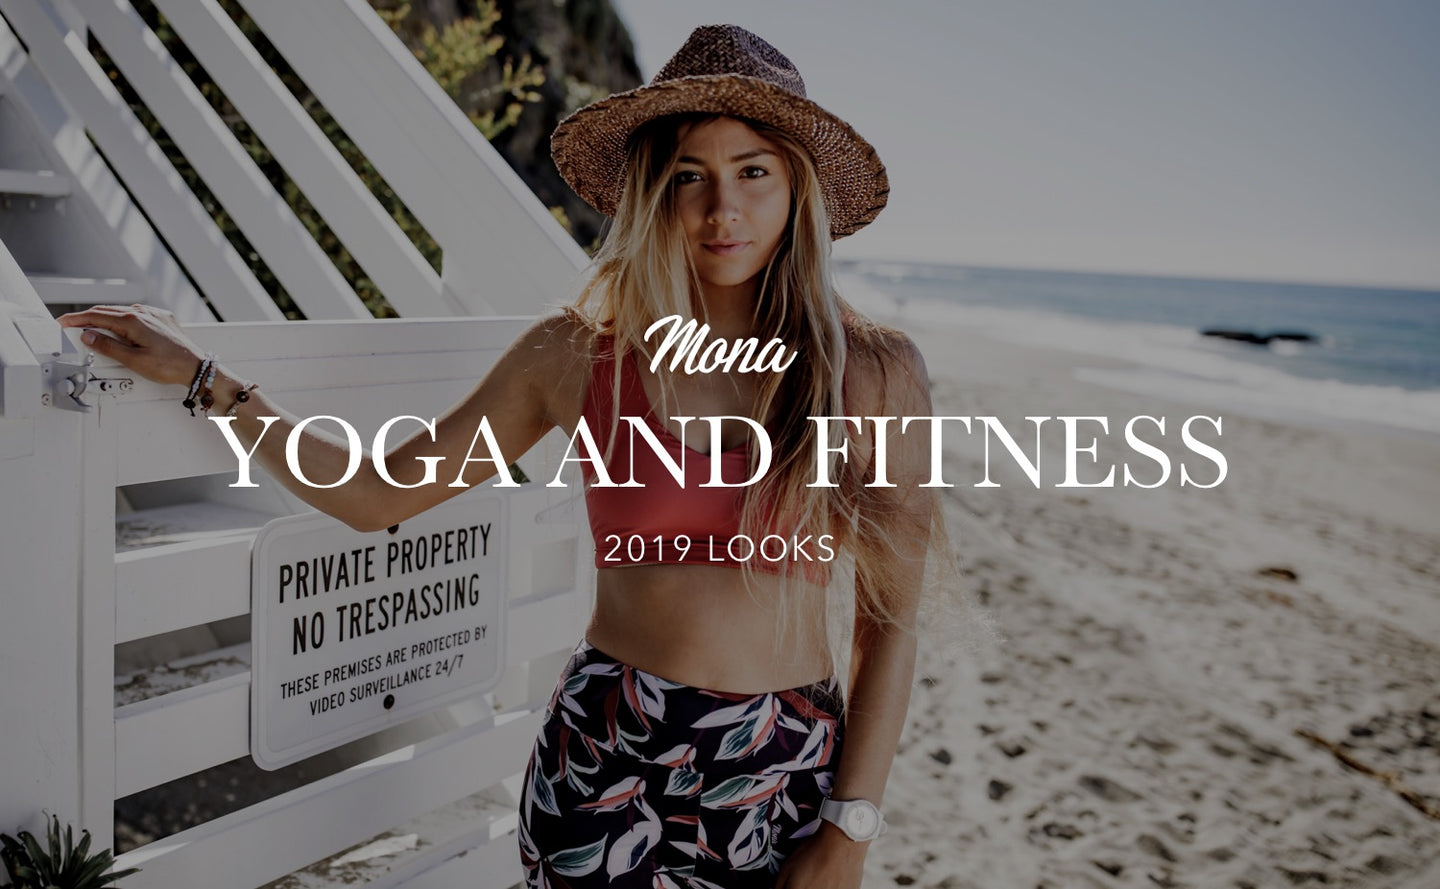 Mona Yoga and Fitness Clothing 2019 Lookbook